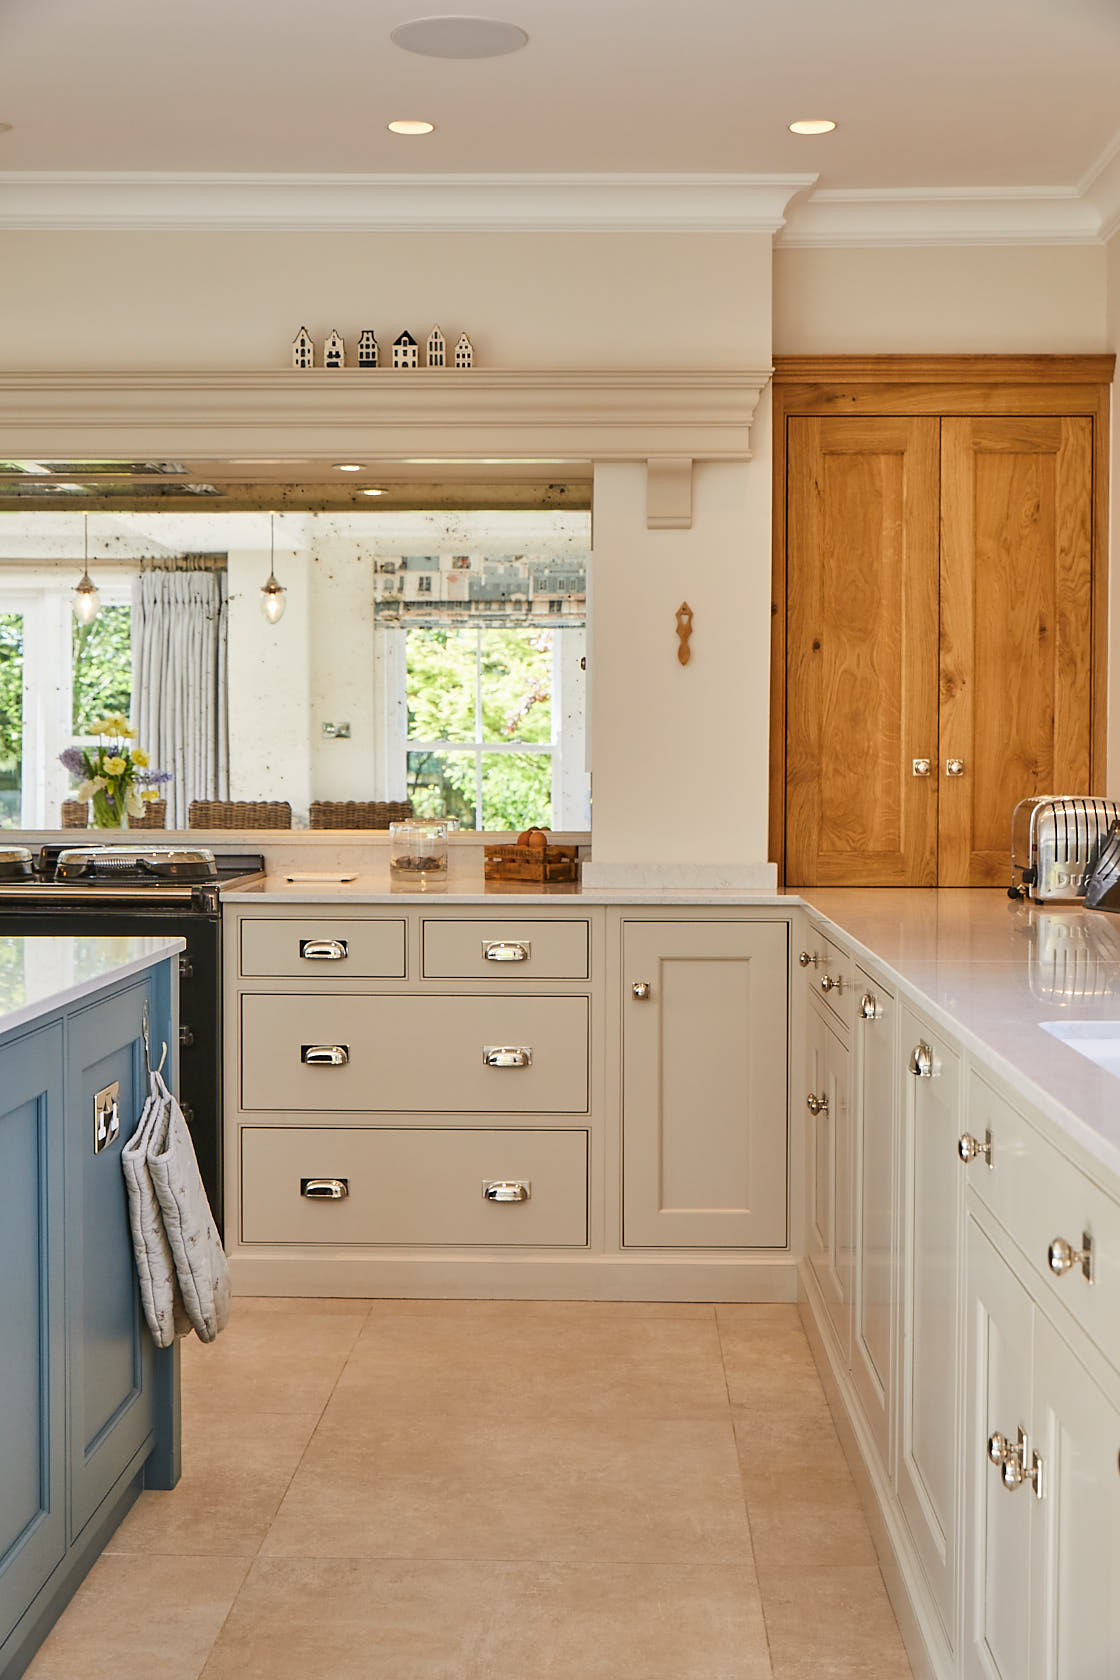 Painted cream kitchen cabinets contrast with solid oak traditional wall unit nestled in alcove